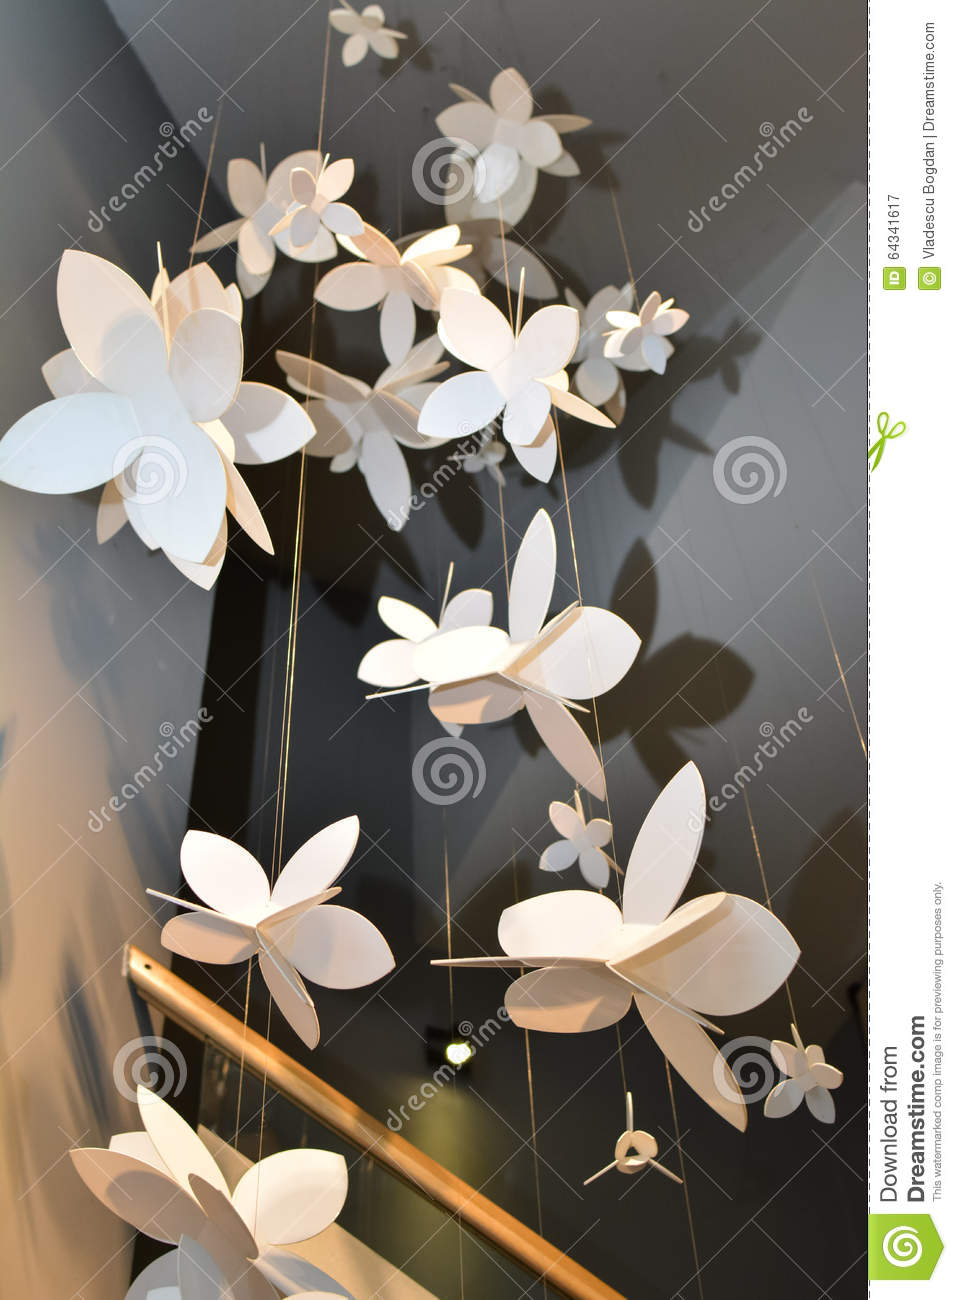 Artificial Flowers For Interior Design Stock Photo